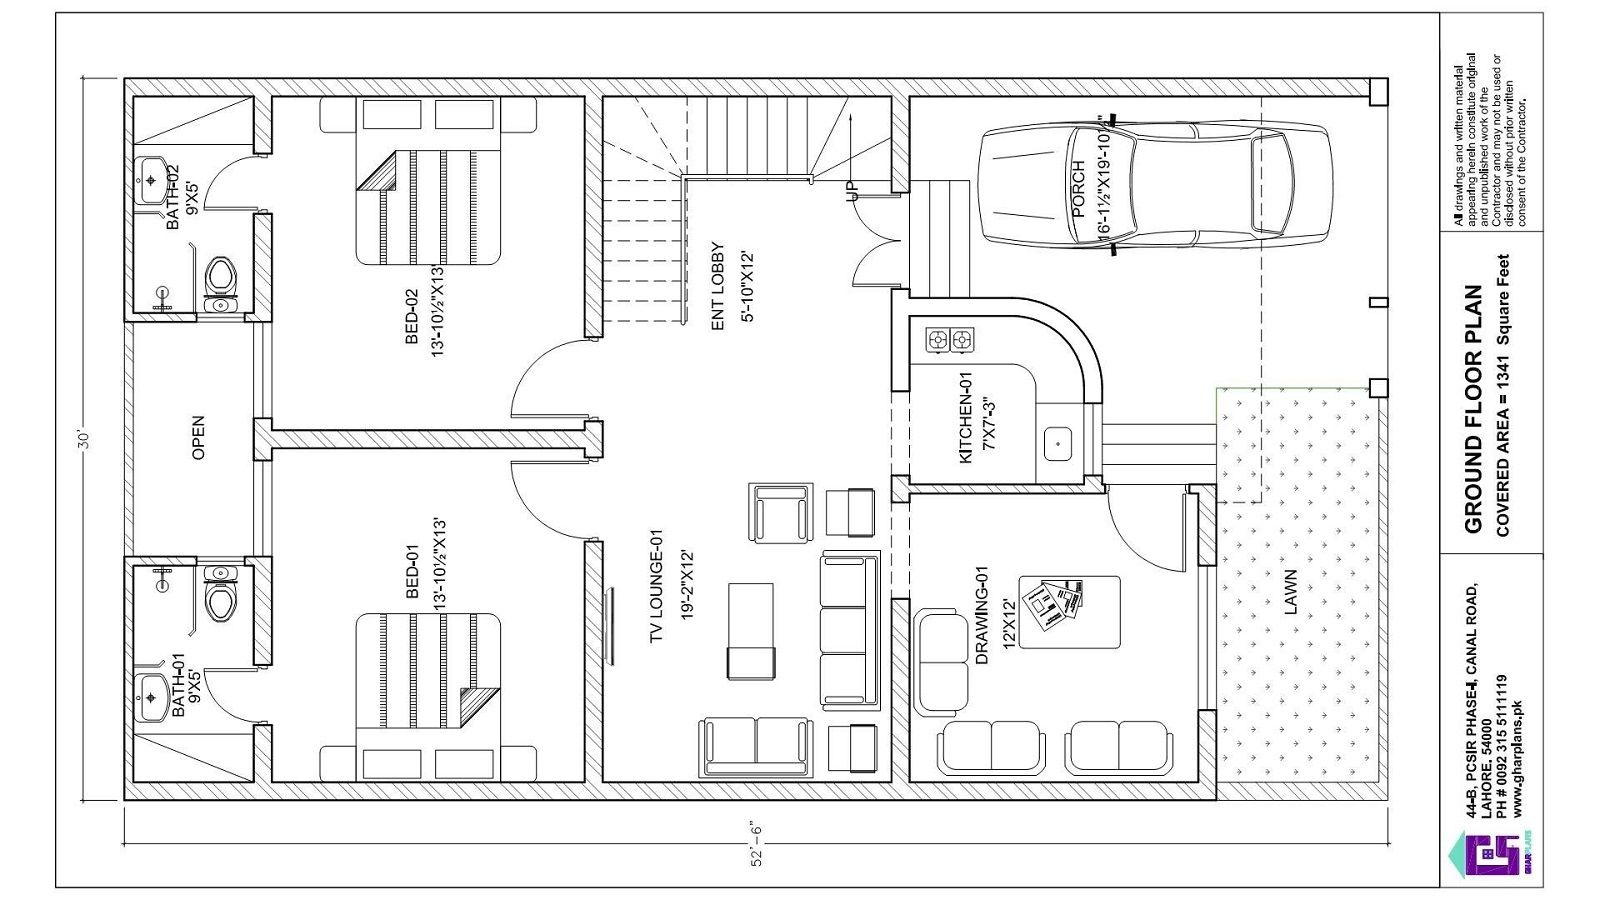 Pin On Floor Plans Layout Plans